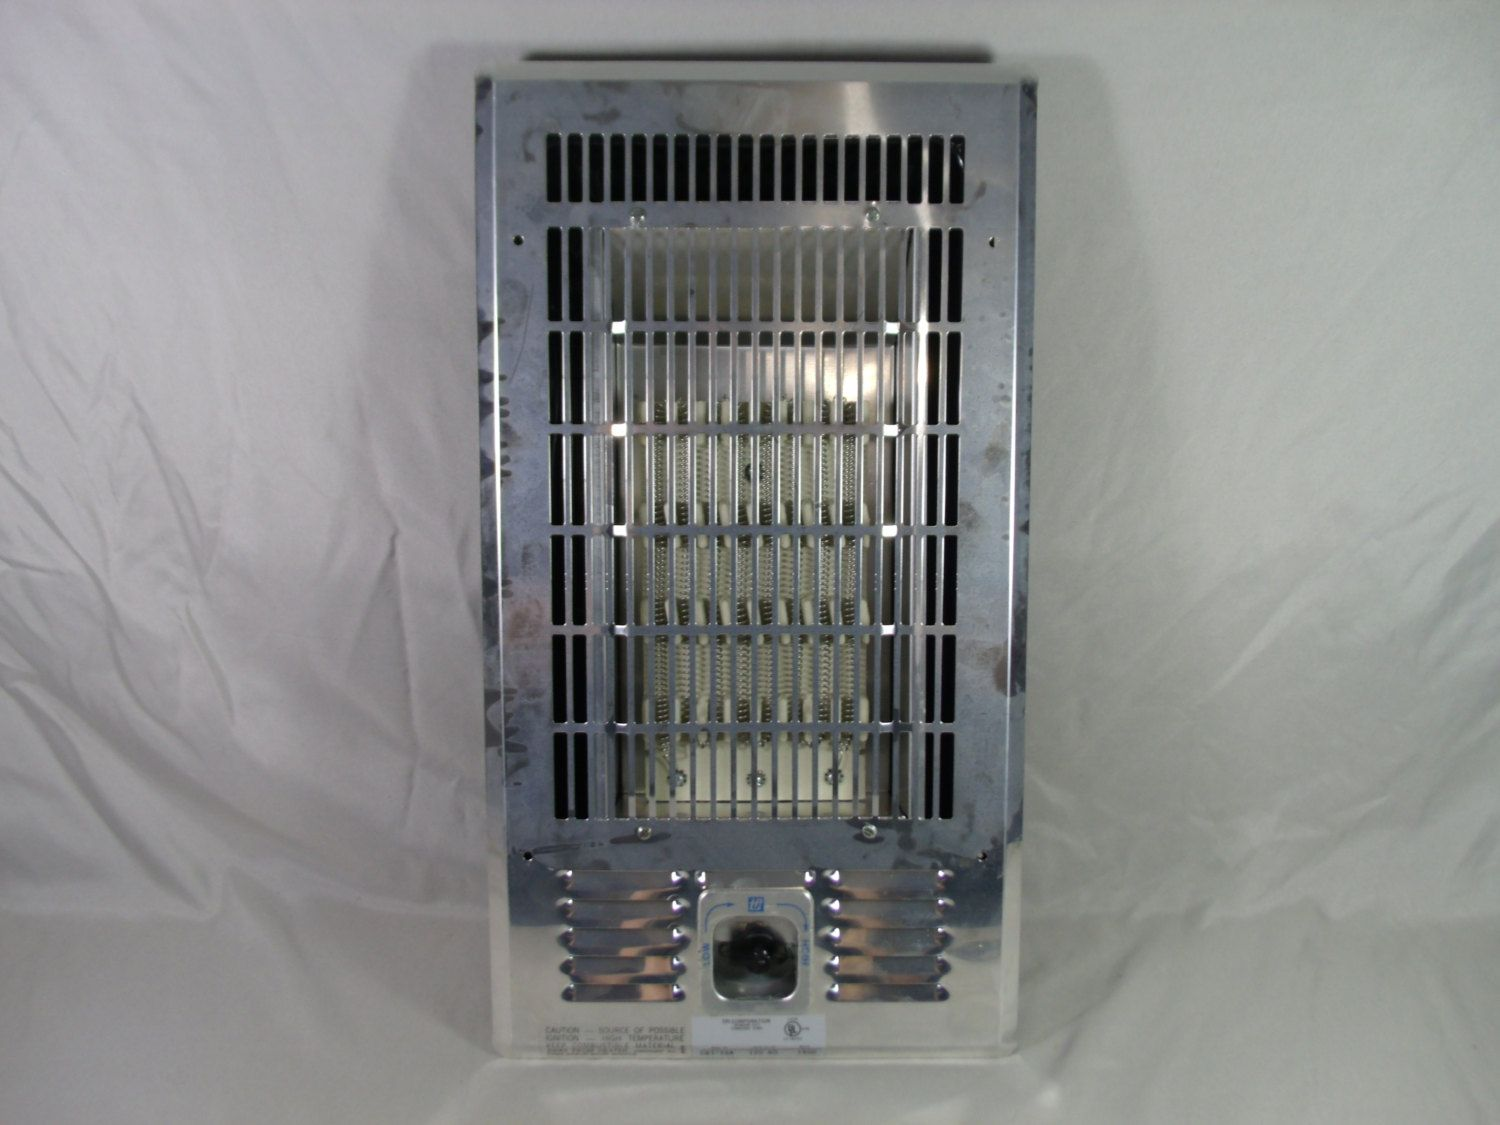 Vintage tpi electric coil radiant wall heater cb1 15a with for Electric radiant heat thermostat